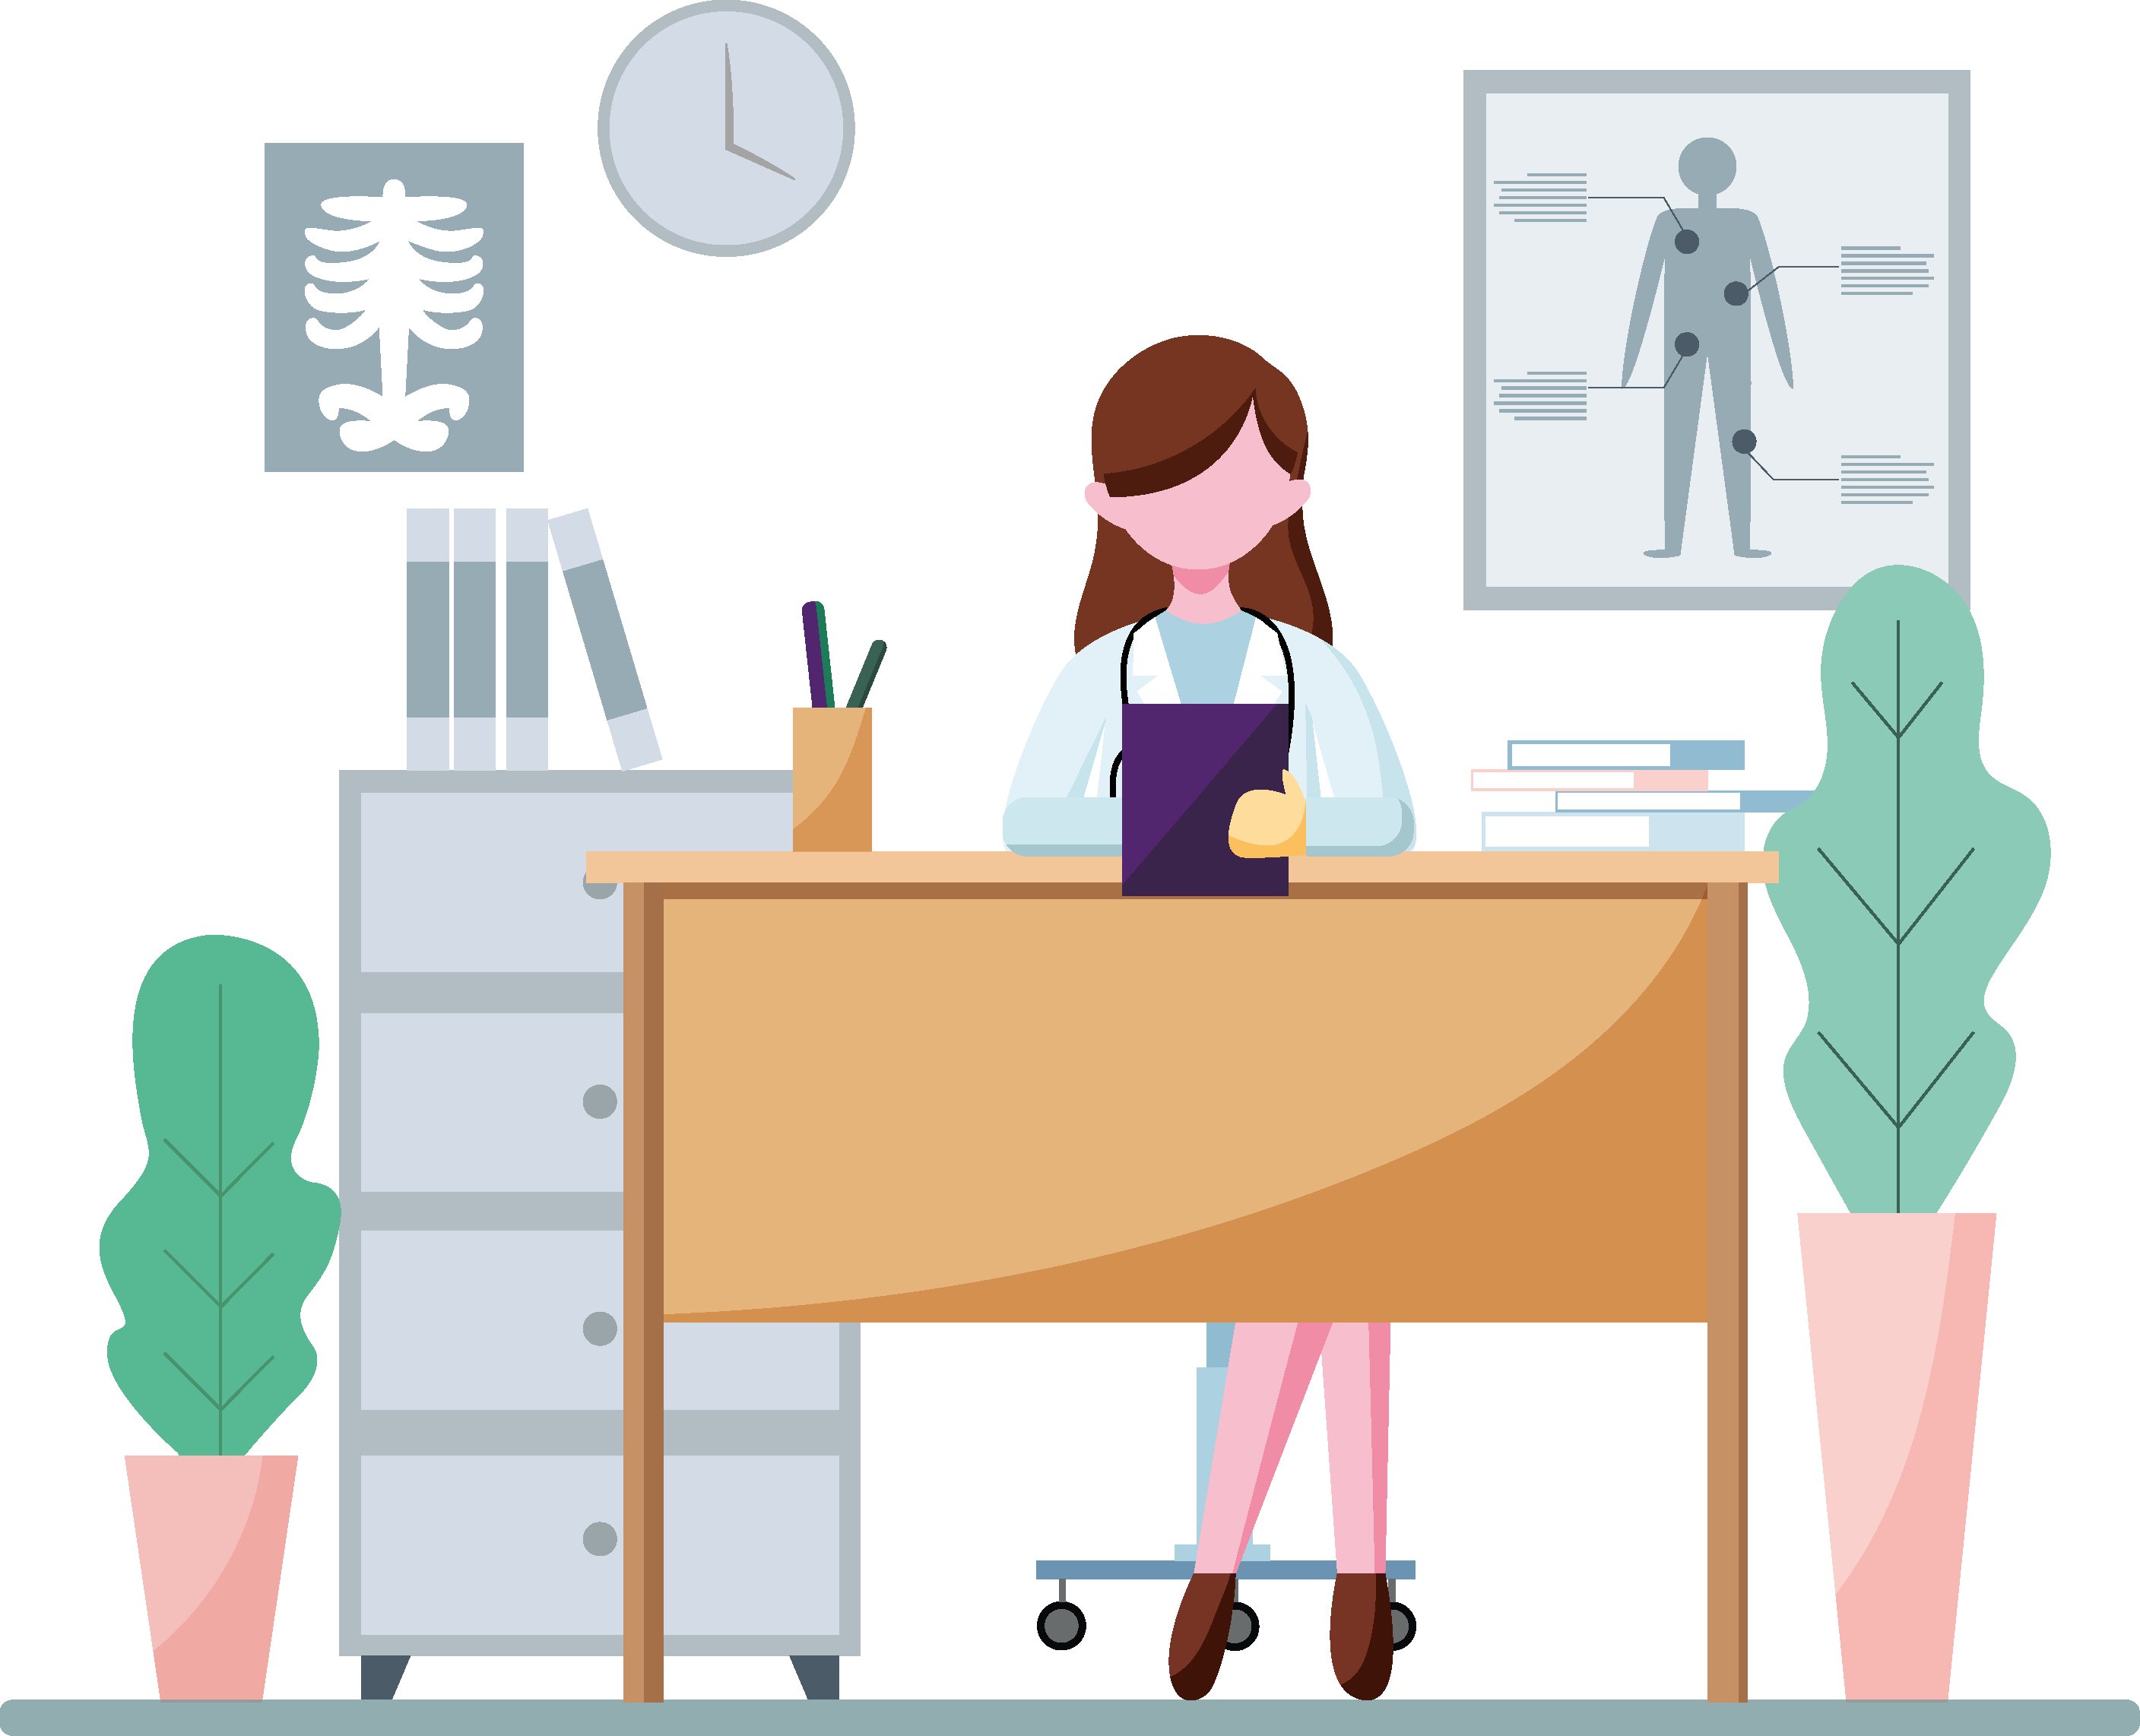 Illustration of a woman in a medical practice sitting behind a desk.